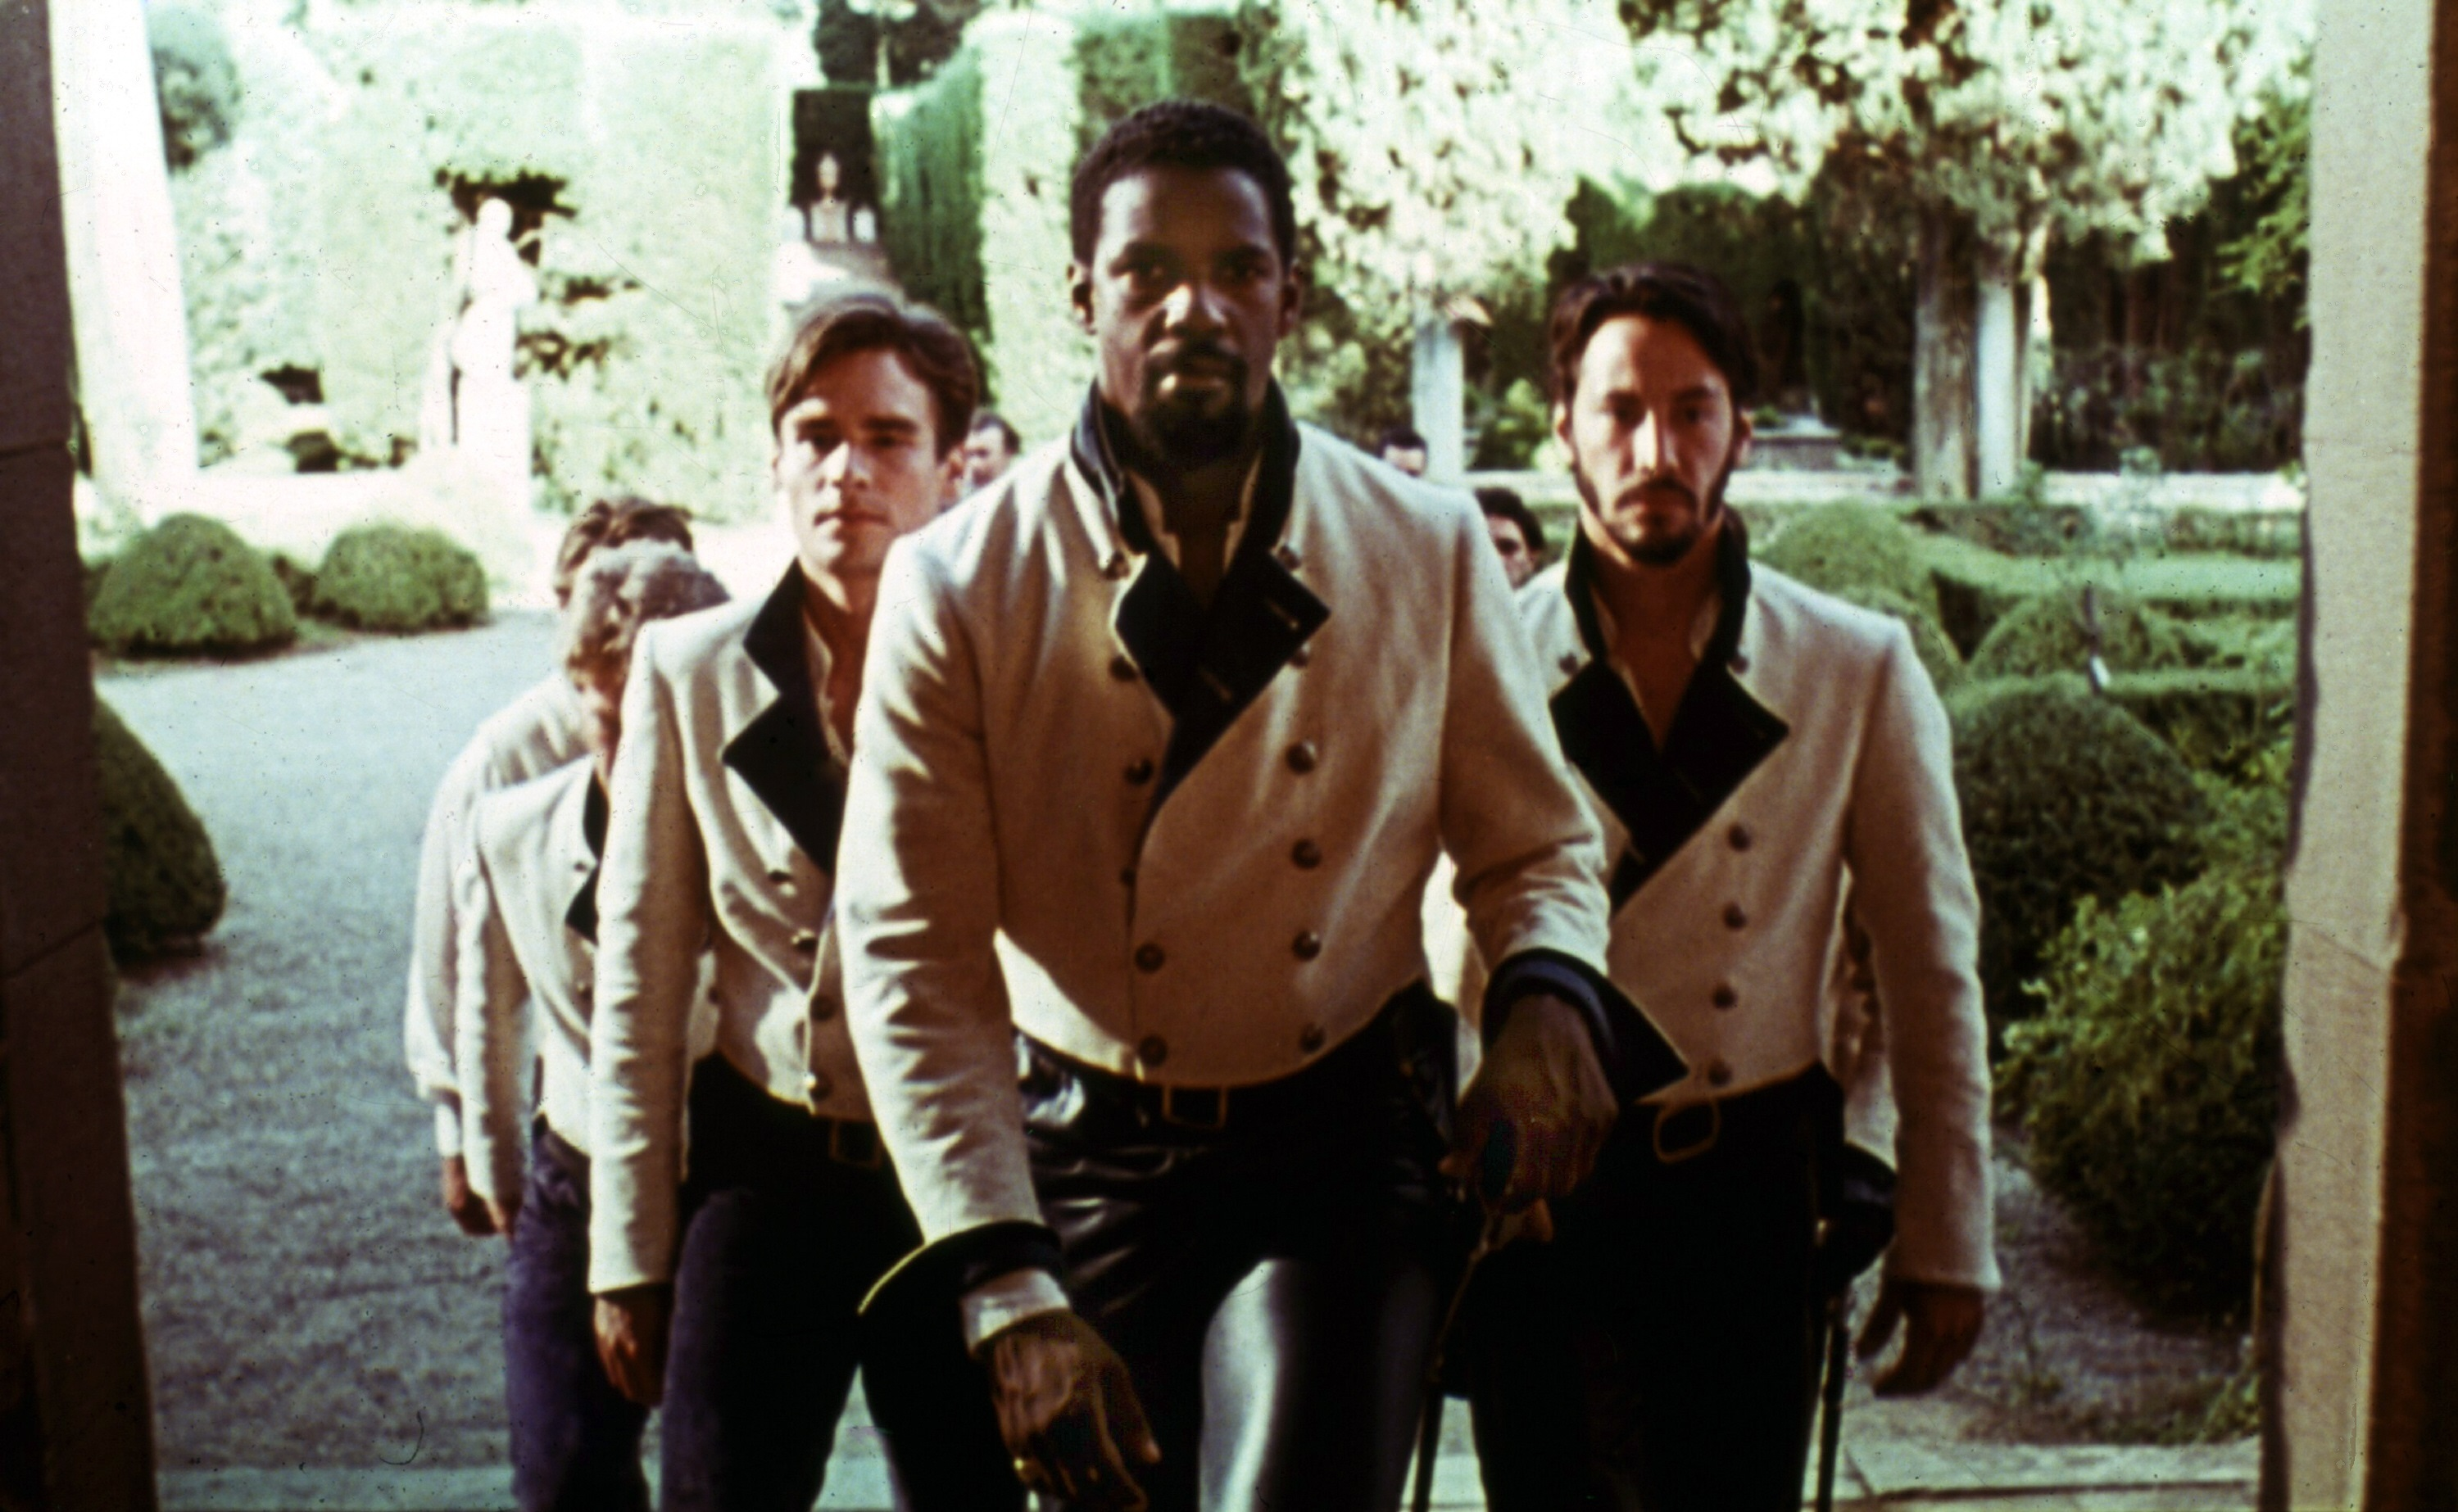 """Robert Sean Leonard, Denzel Washington and Keanu Reeves in 1993's """"Much Ado About Nothing."""""""